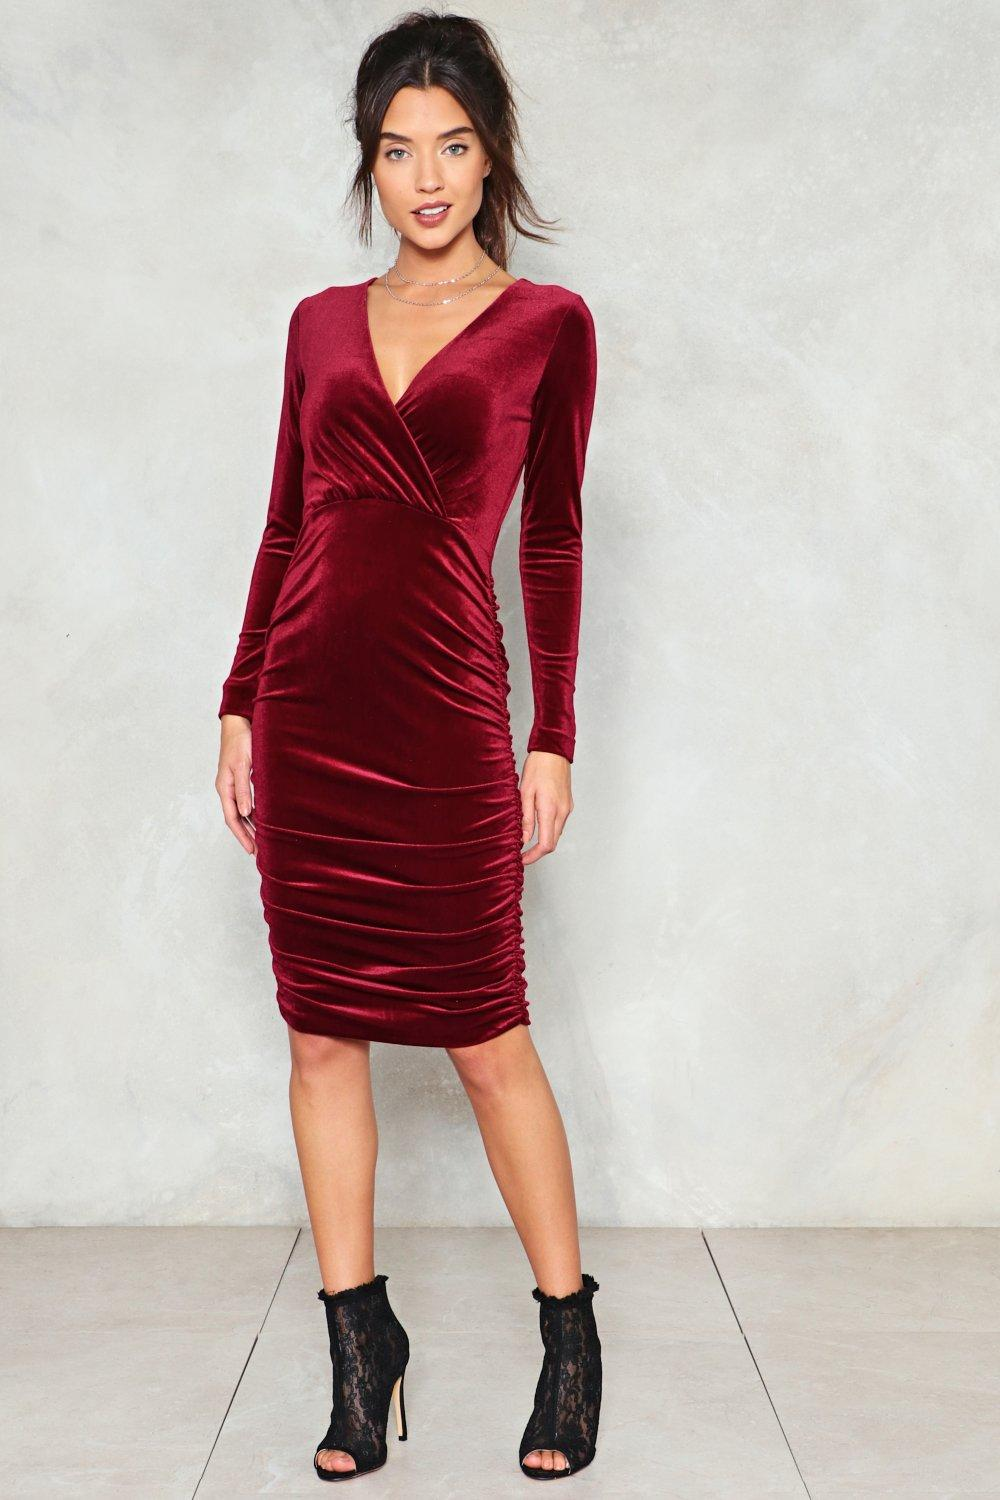 b6935fea1057e Ruche Around Town Velvet Midi Dress | Shop Clothes at Nasty Gal!